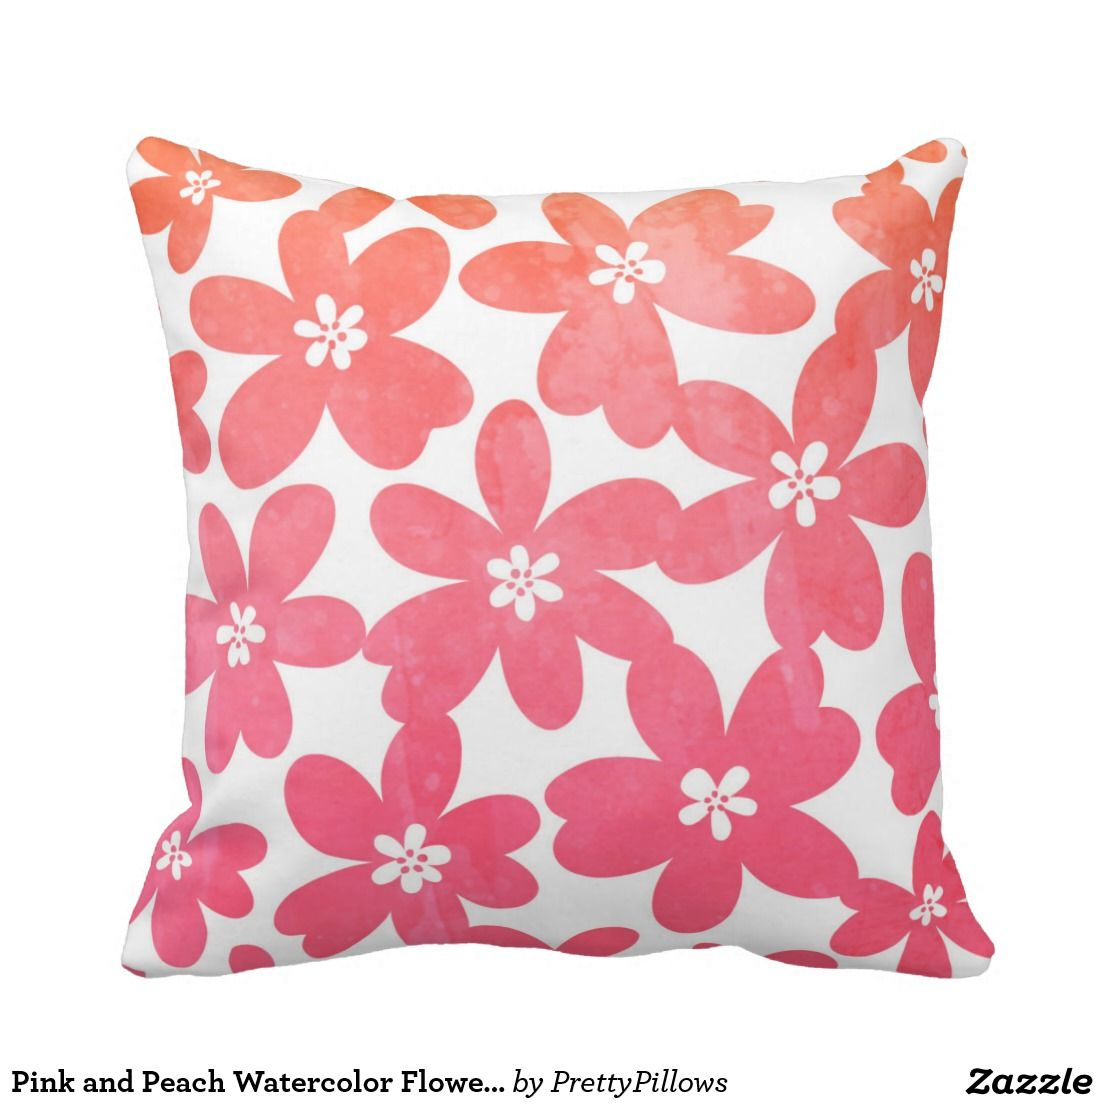 Pink And Peach Watercolor Flower Pillow Zazzle Artists Pin Your